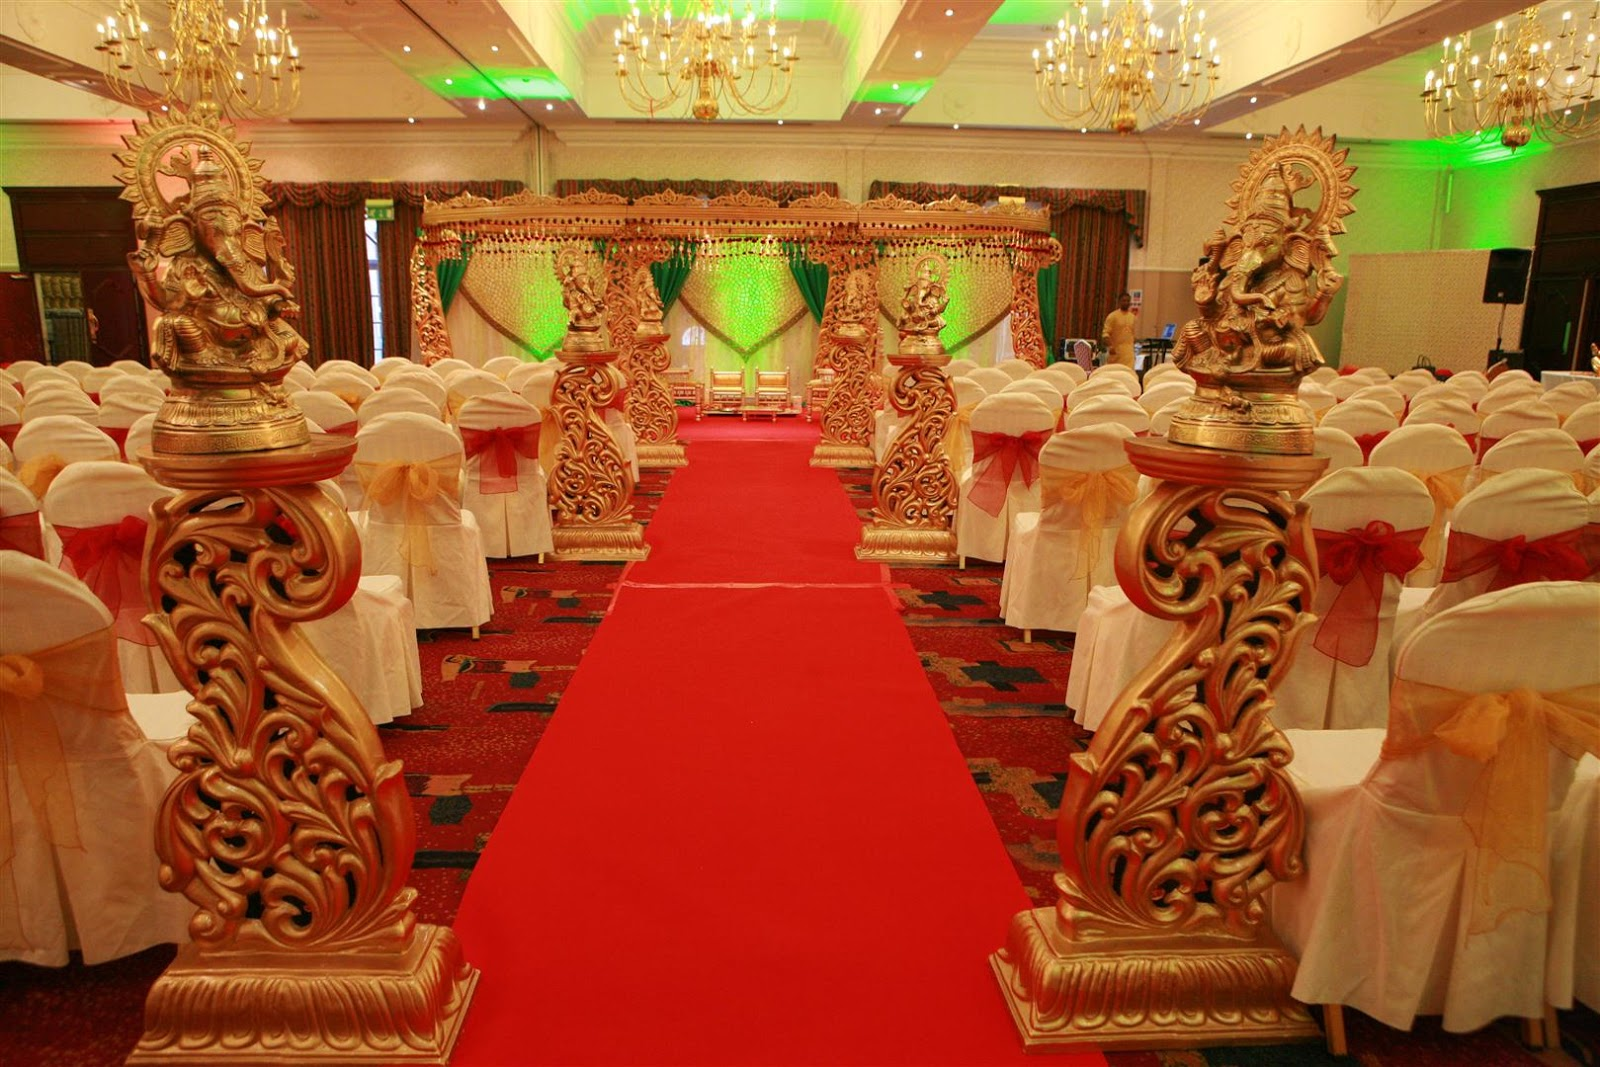 Royal wedding decorations romantic decoration asian wedding decorations mazs blog our favourite asian wedding decorations in coventry junglespirit Images